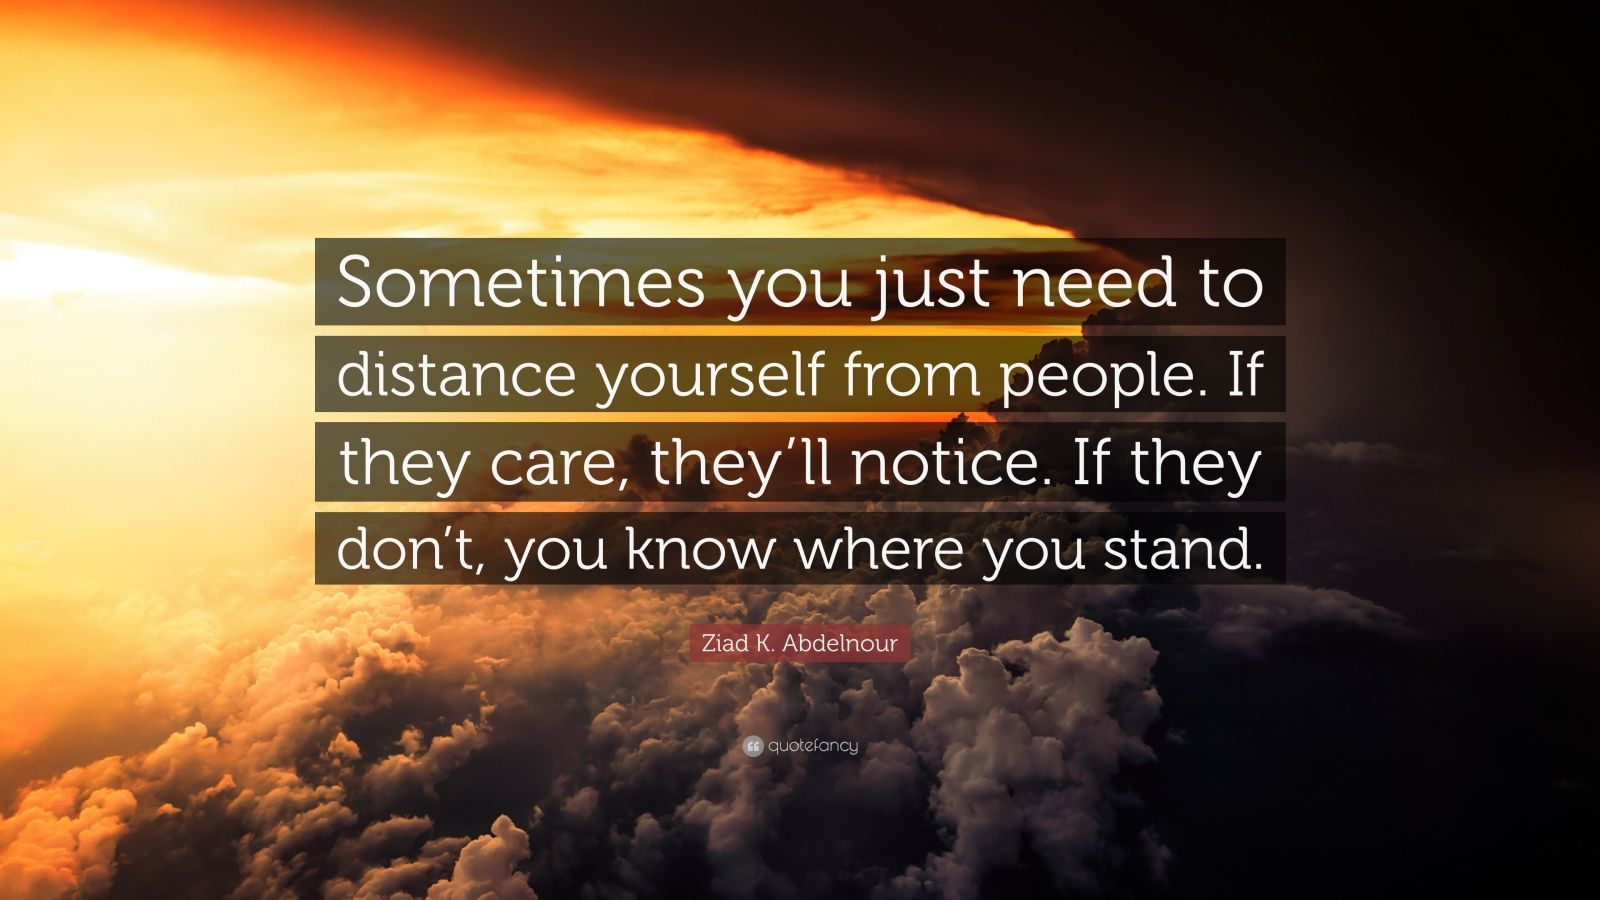 "Ziad K. Abdelnour Quote: ""Sometimes you just need to distance yourself from people. If they care, they'll notice. If they don't, you know where you stand."""